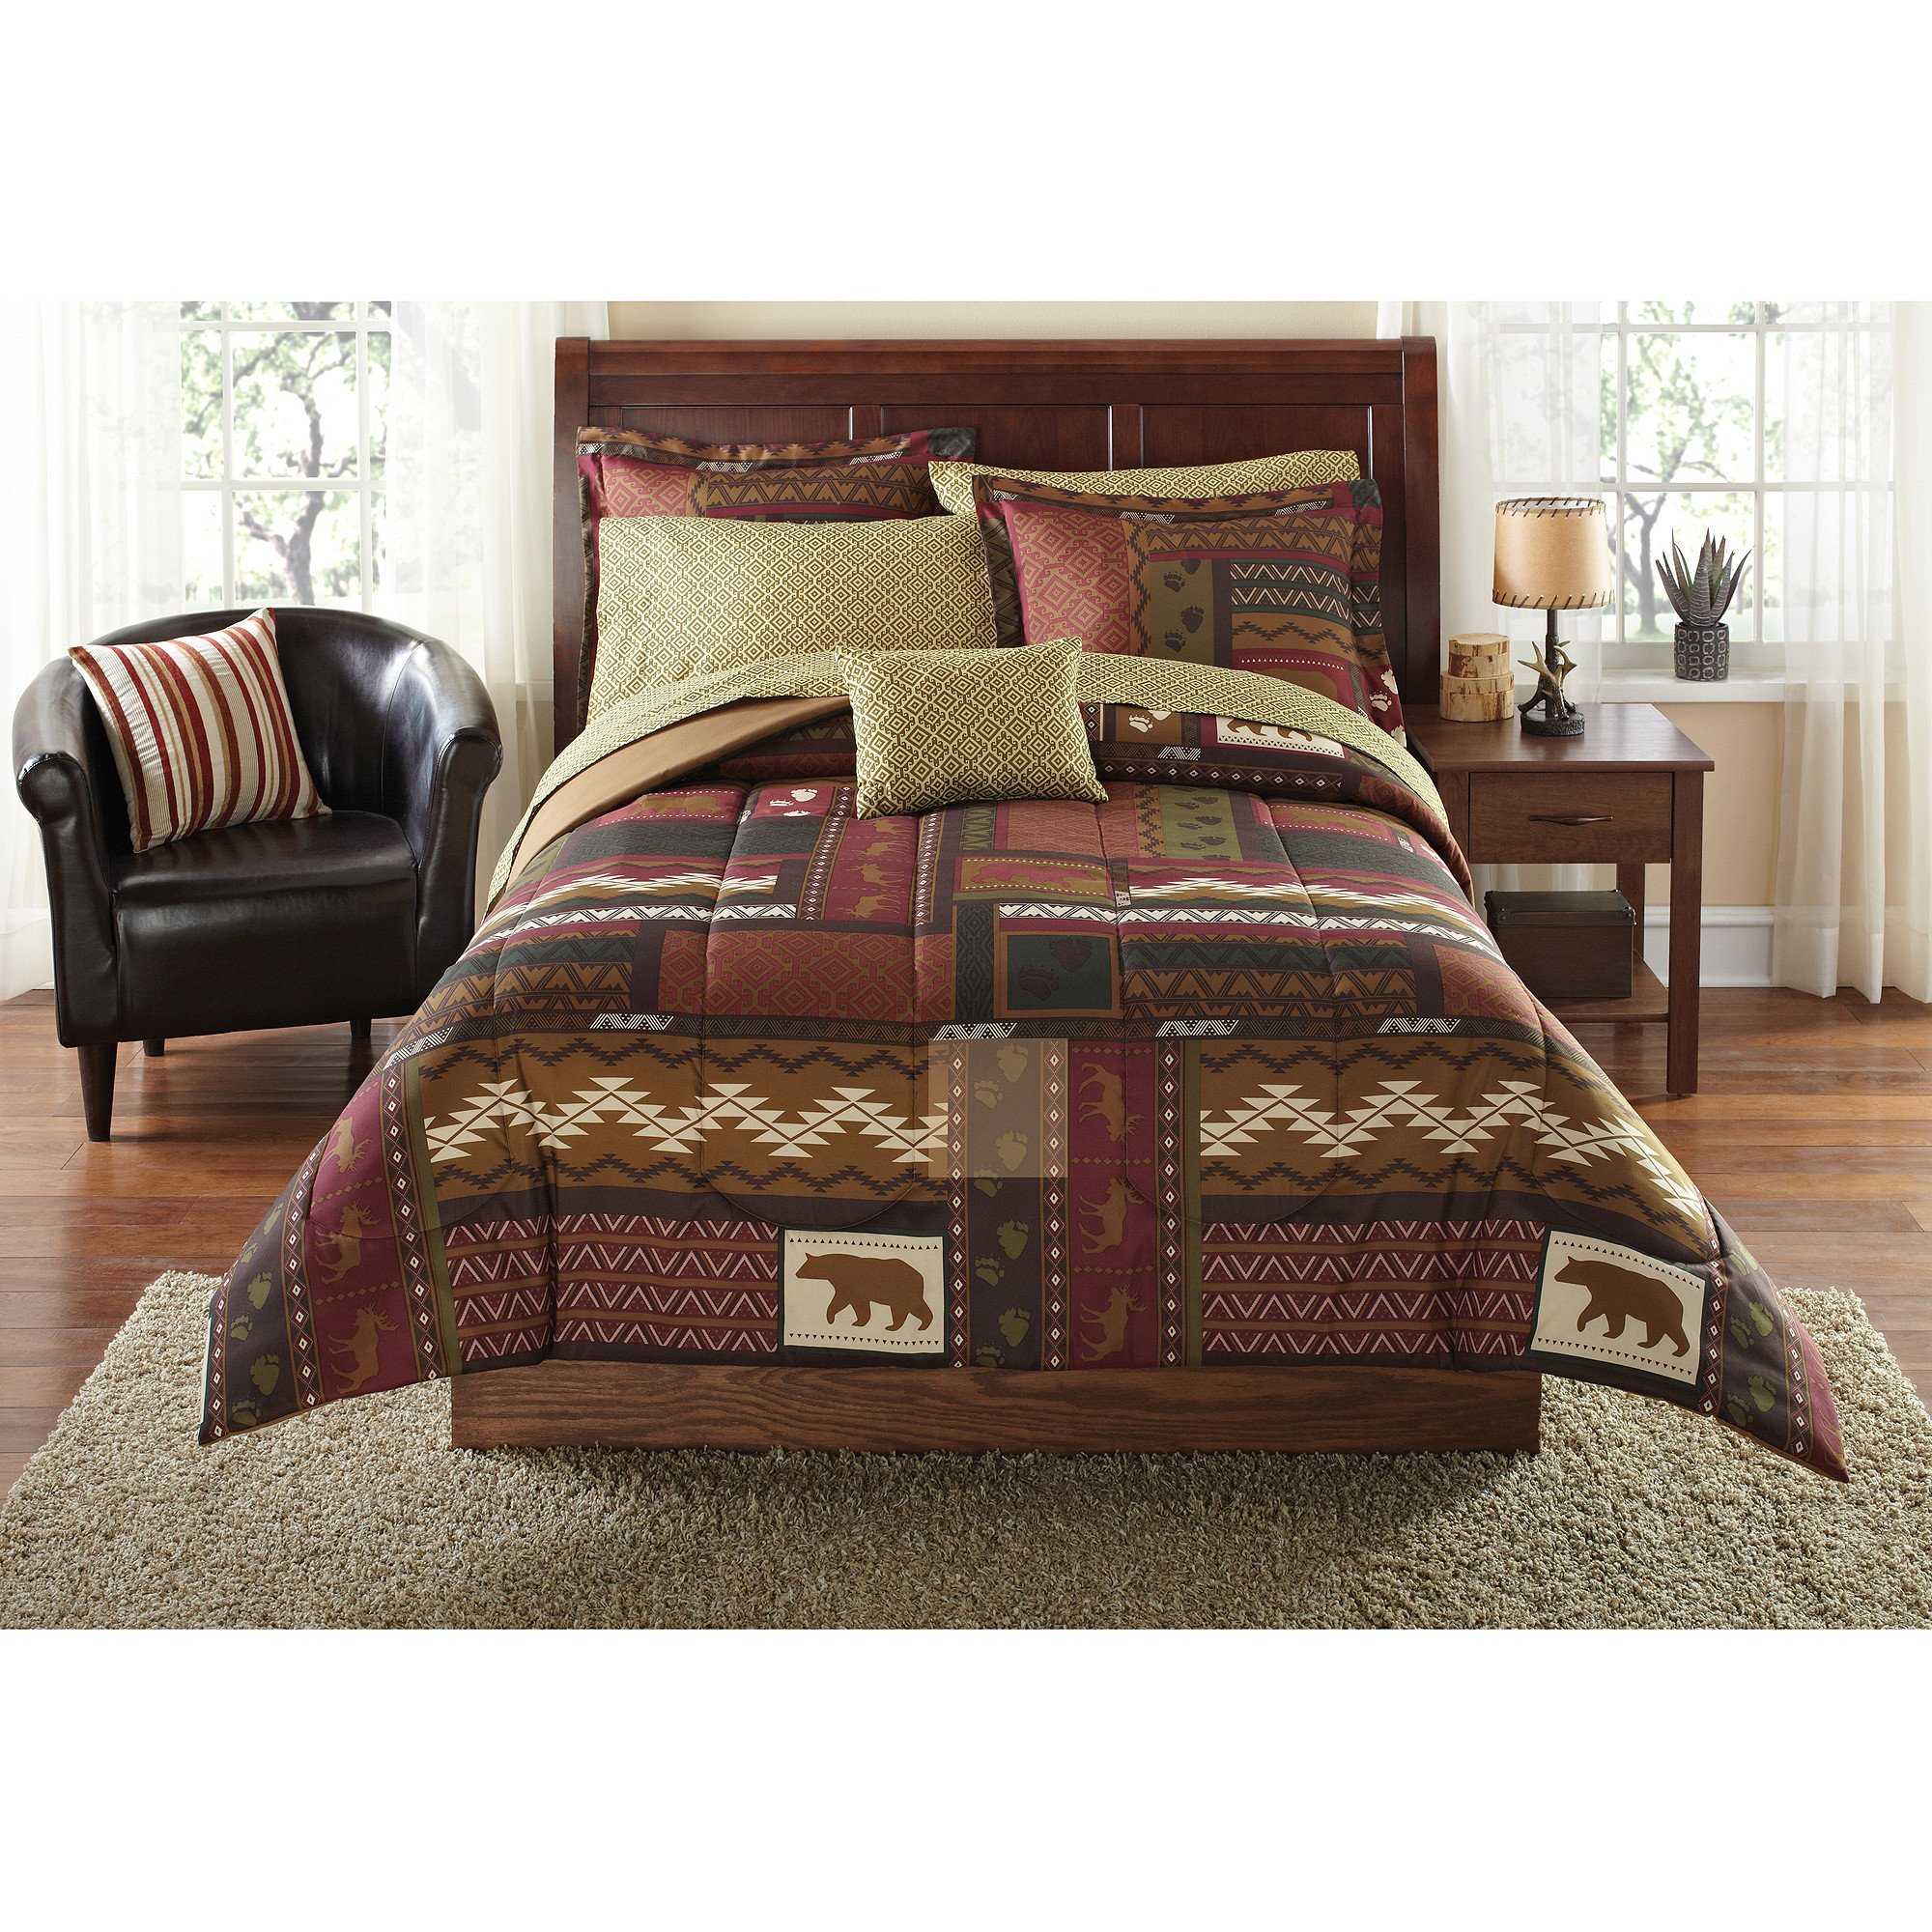 8 Piece Multi Color Patchwork Geometric Moose Printed Comforter Set Full Sized Dark Brown Golden Woods Rustic Lodge Cabin Animal Wildlife Bear Footprint Features Kids Bedding Teen Bedroom Polyester by MFN (Image #1)